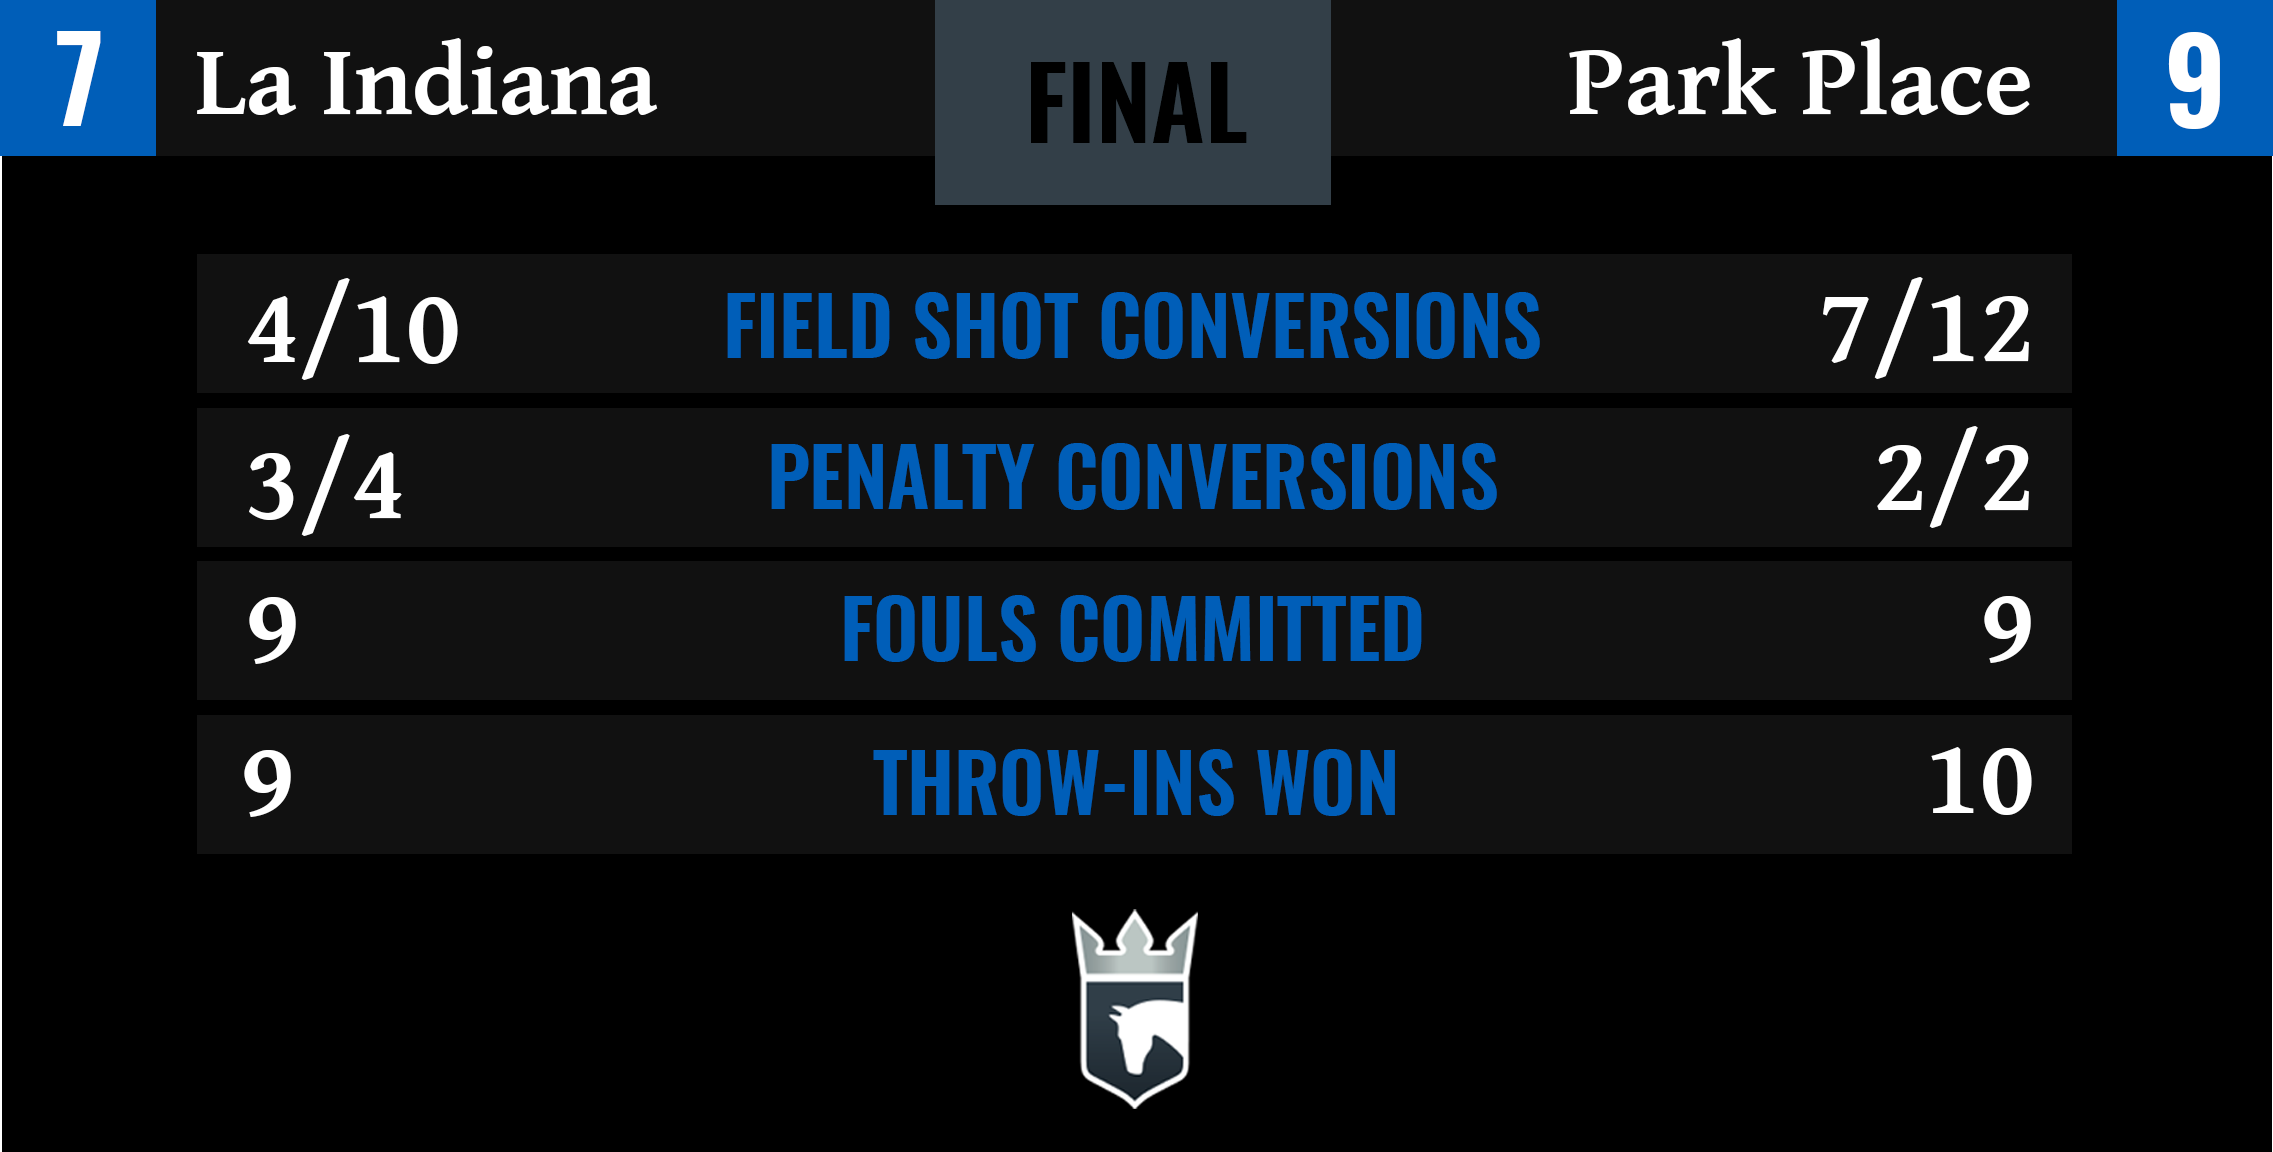 La Indiana vs Park Place Final Stats